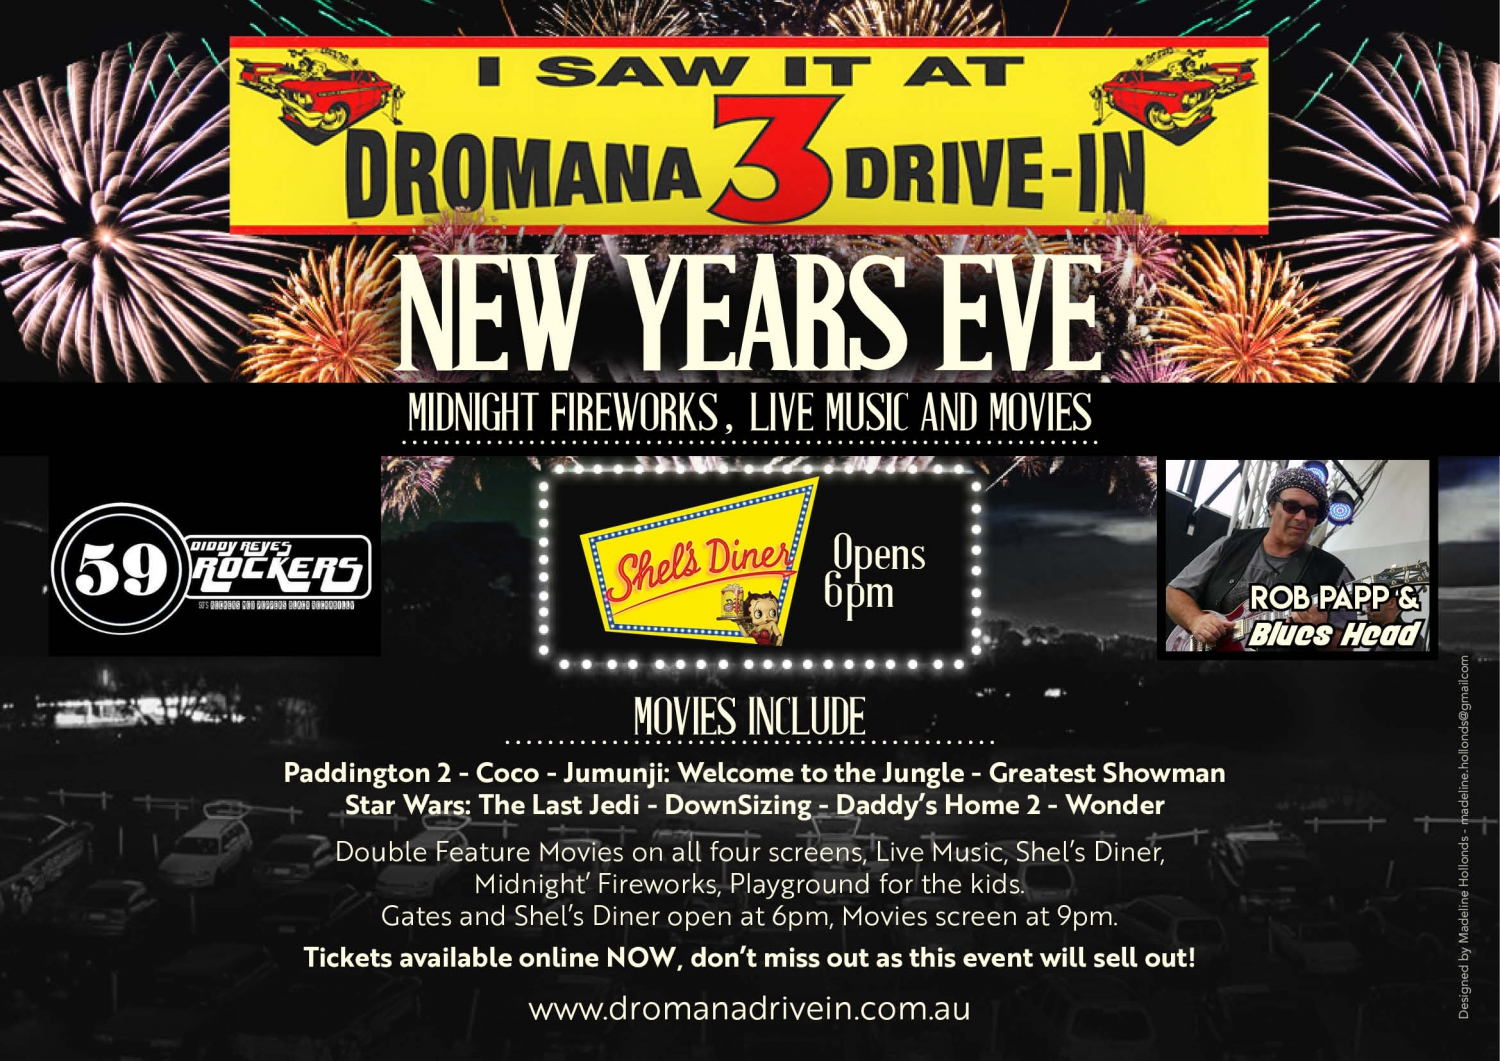 New Years Eve @ Dromana 3 Drive In